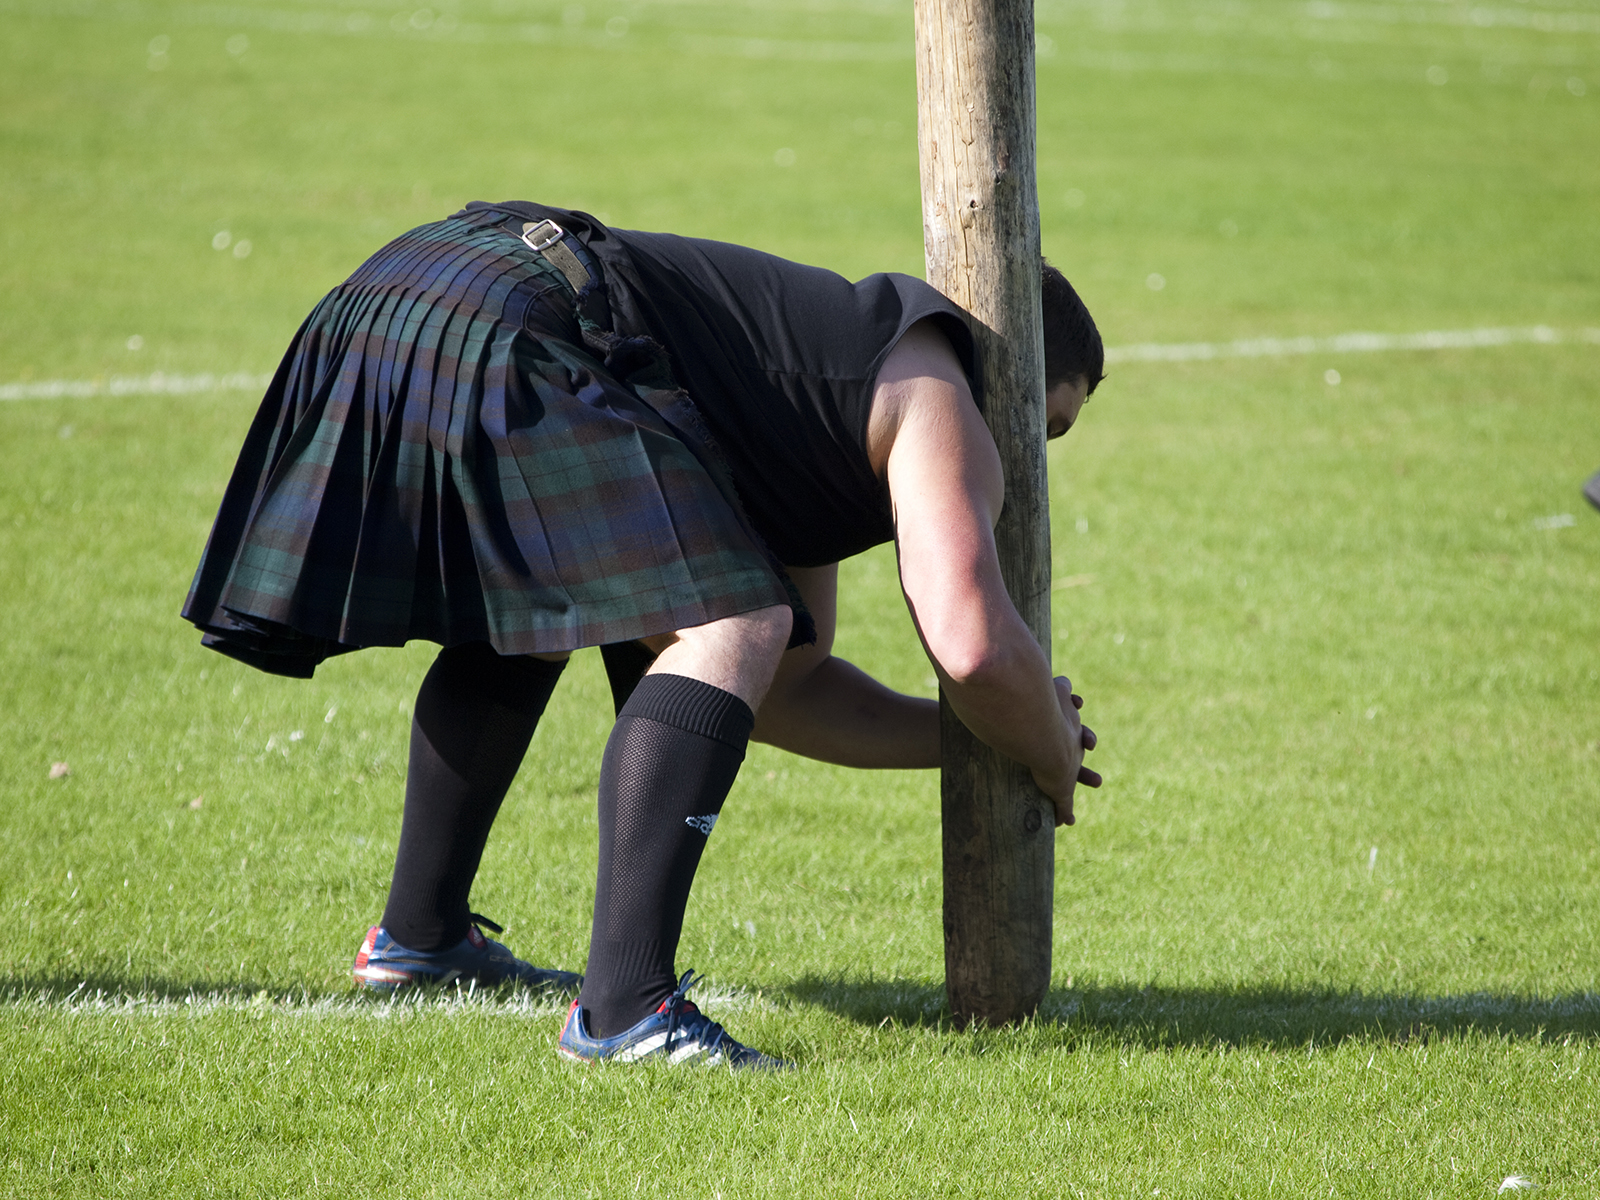 A competitor lifting the caber at a Highland Games event in Scotland